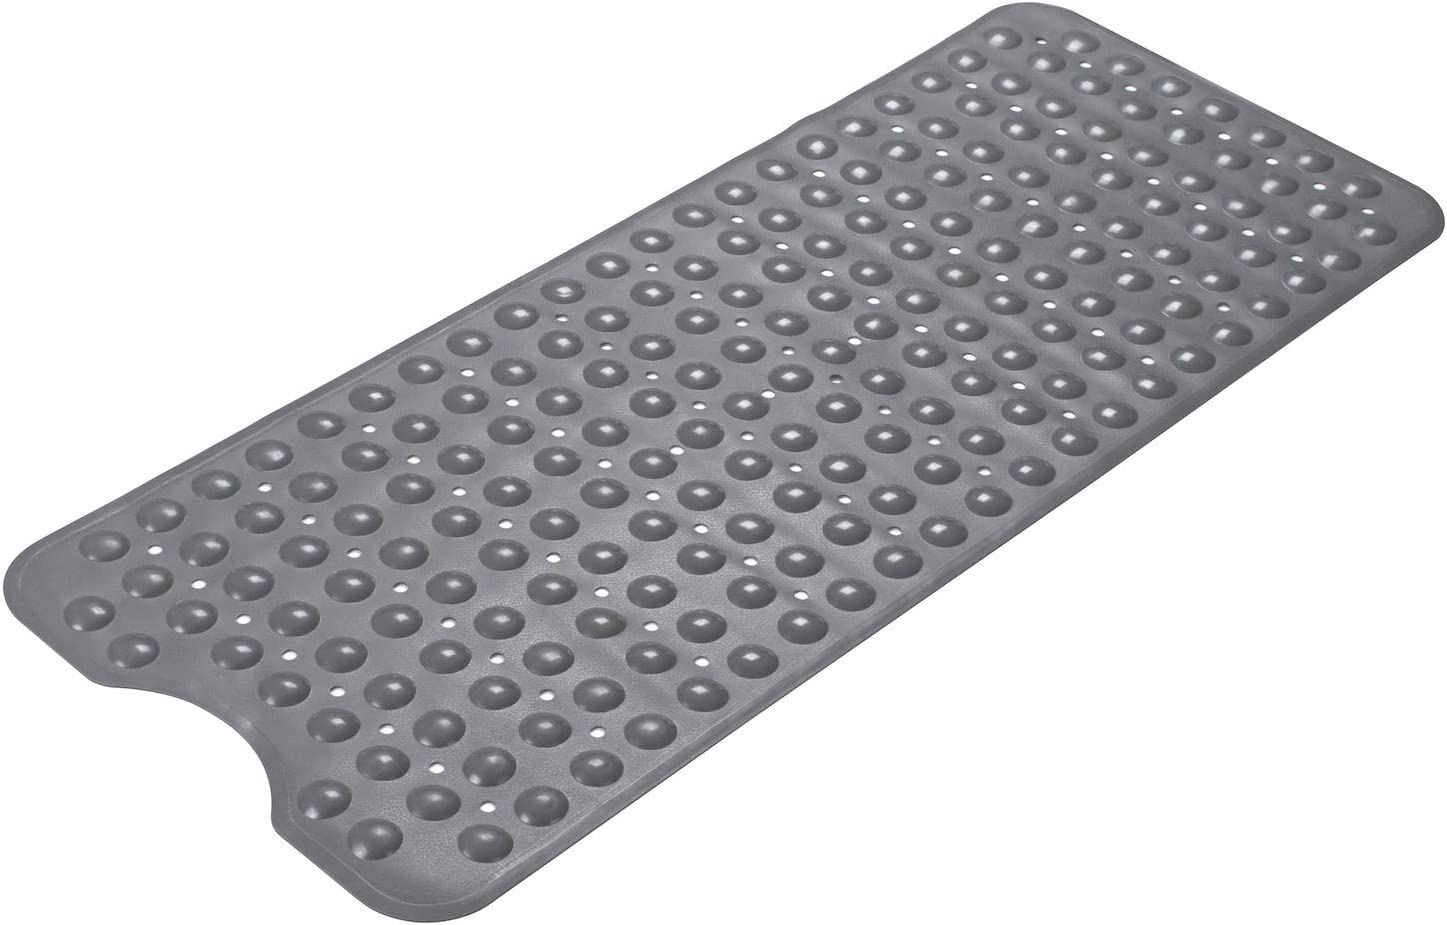 AmazerBath Bath Tub Mat, Larger Suction Cups Bath Mats with Strong Grip, Safe TPE Material, Machine Washable, Non-Slip Shower Mats for Bathroom, 39 x 16 Inches (Grey)